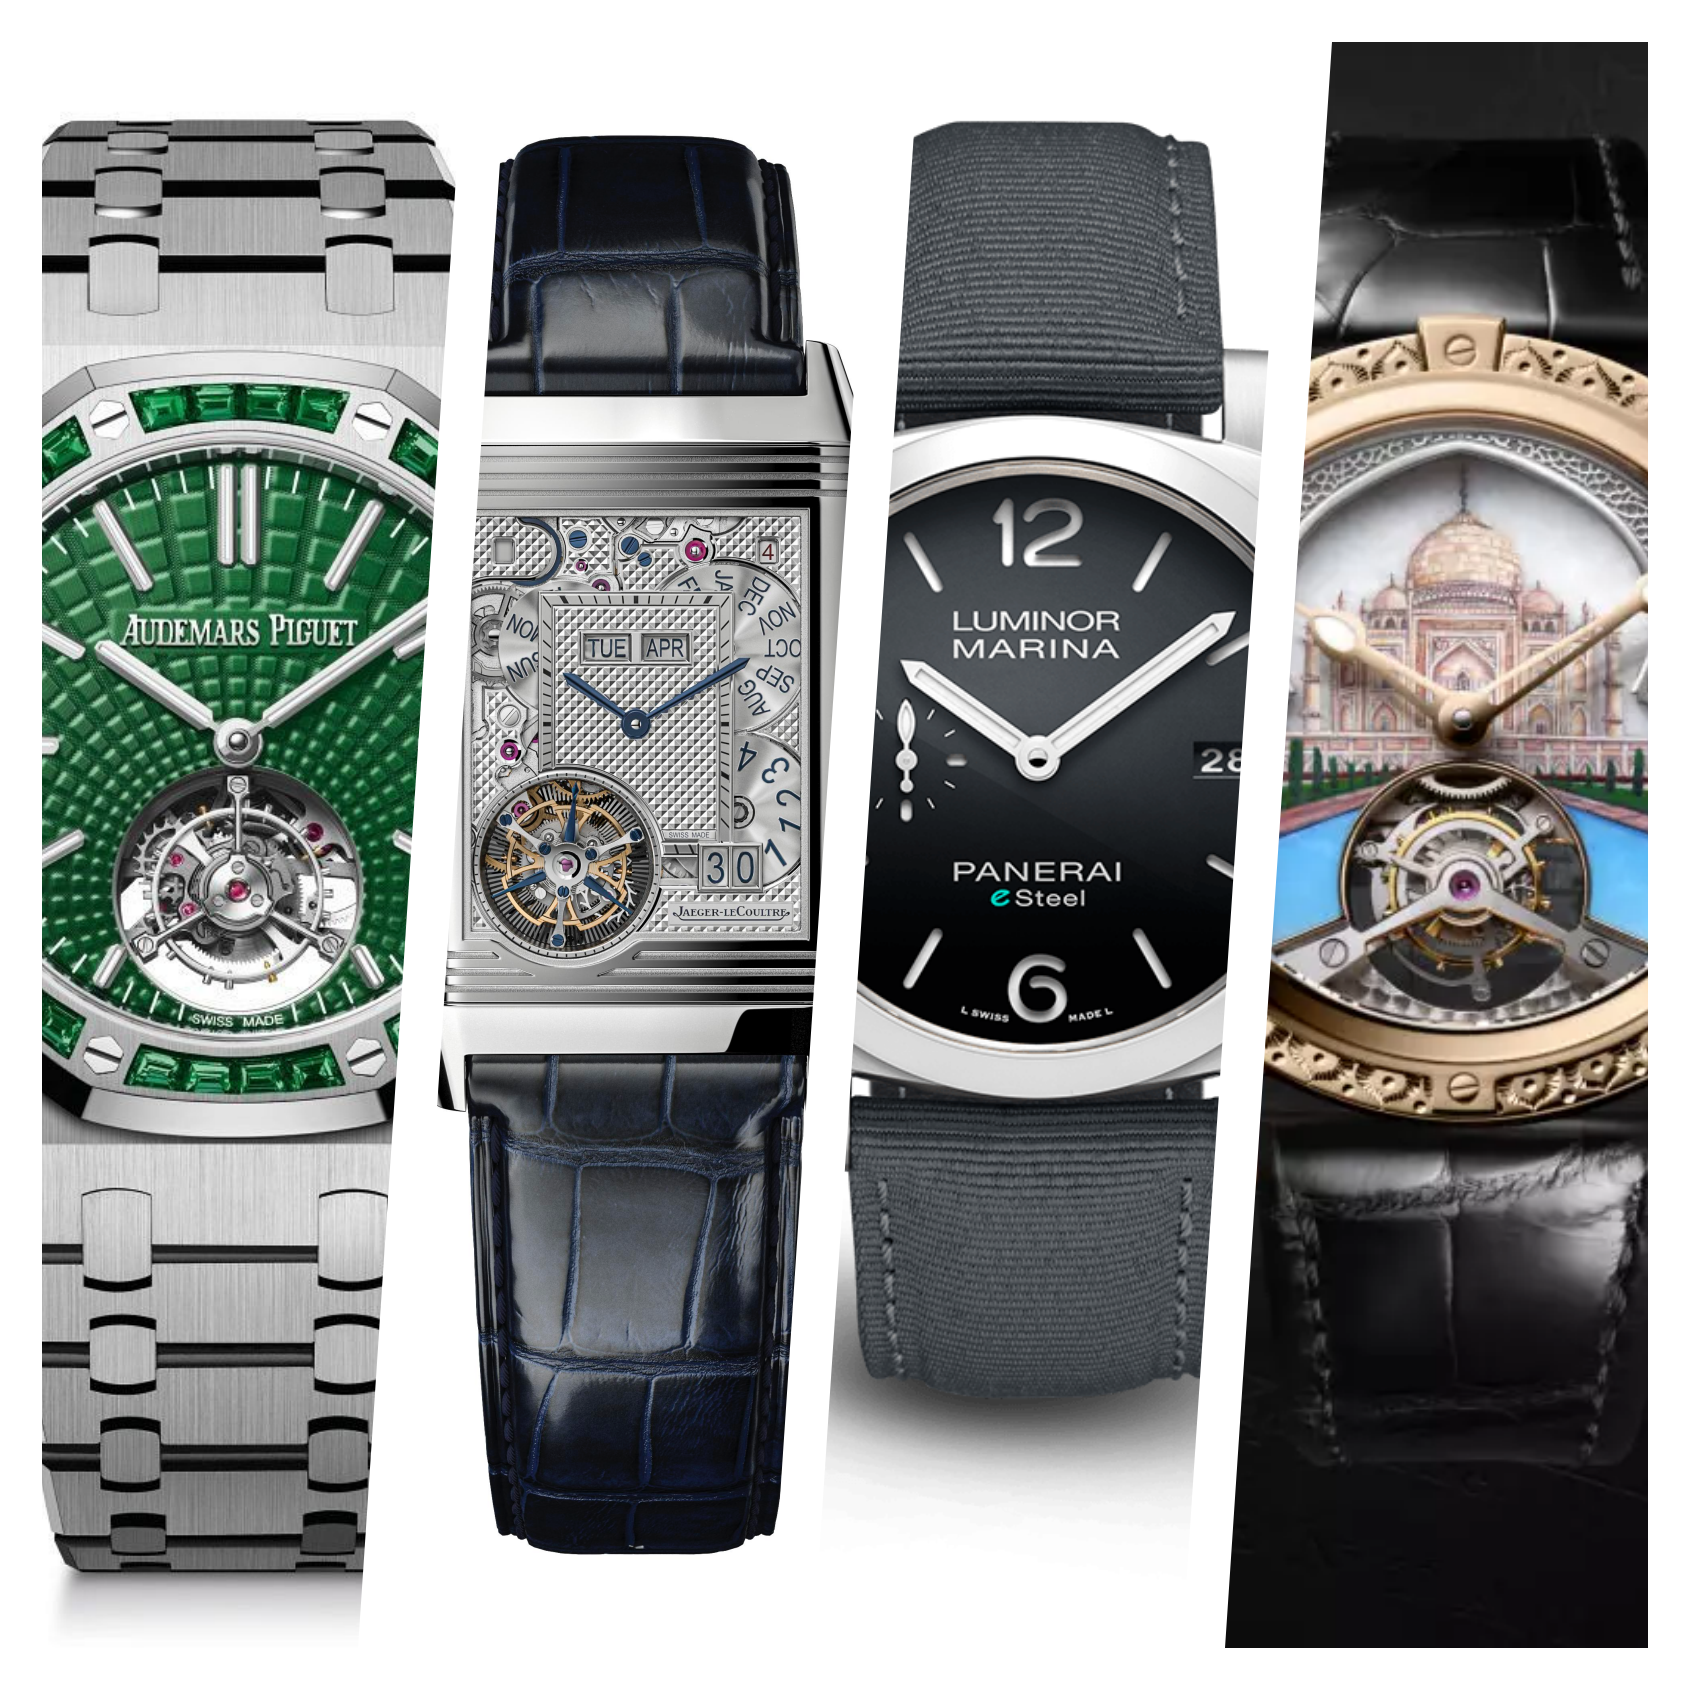 Watches & Wonders: People's Choice Awards – The Most Batsh*t Crazy Watch